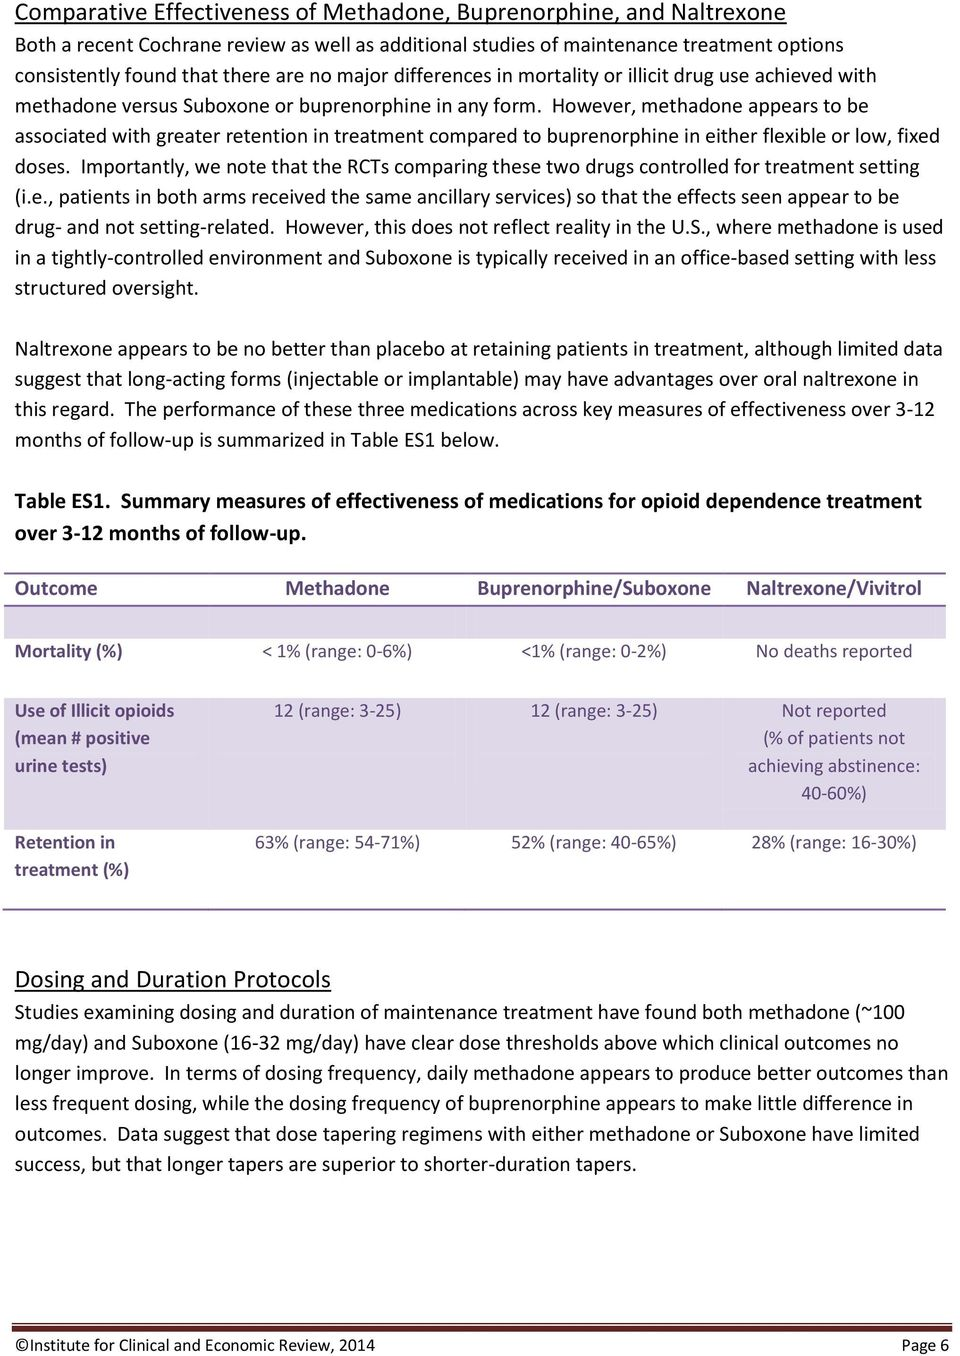 However, methadone appears to be associated with greater retention in treatment compared to buprenorphine in either flexible or low, fixed doses.